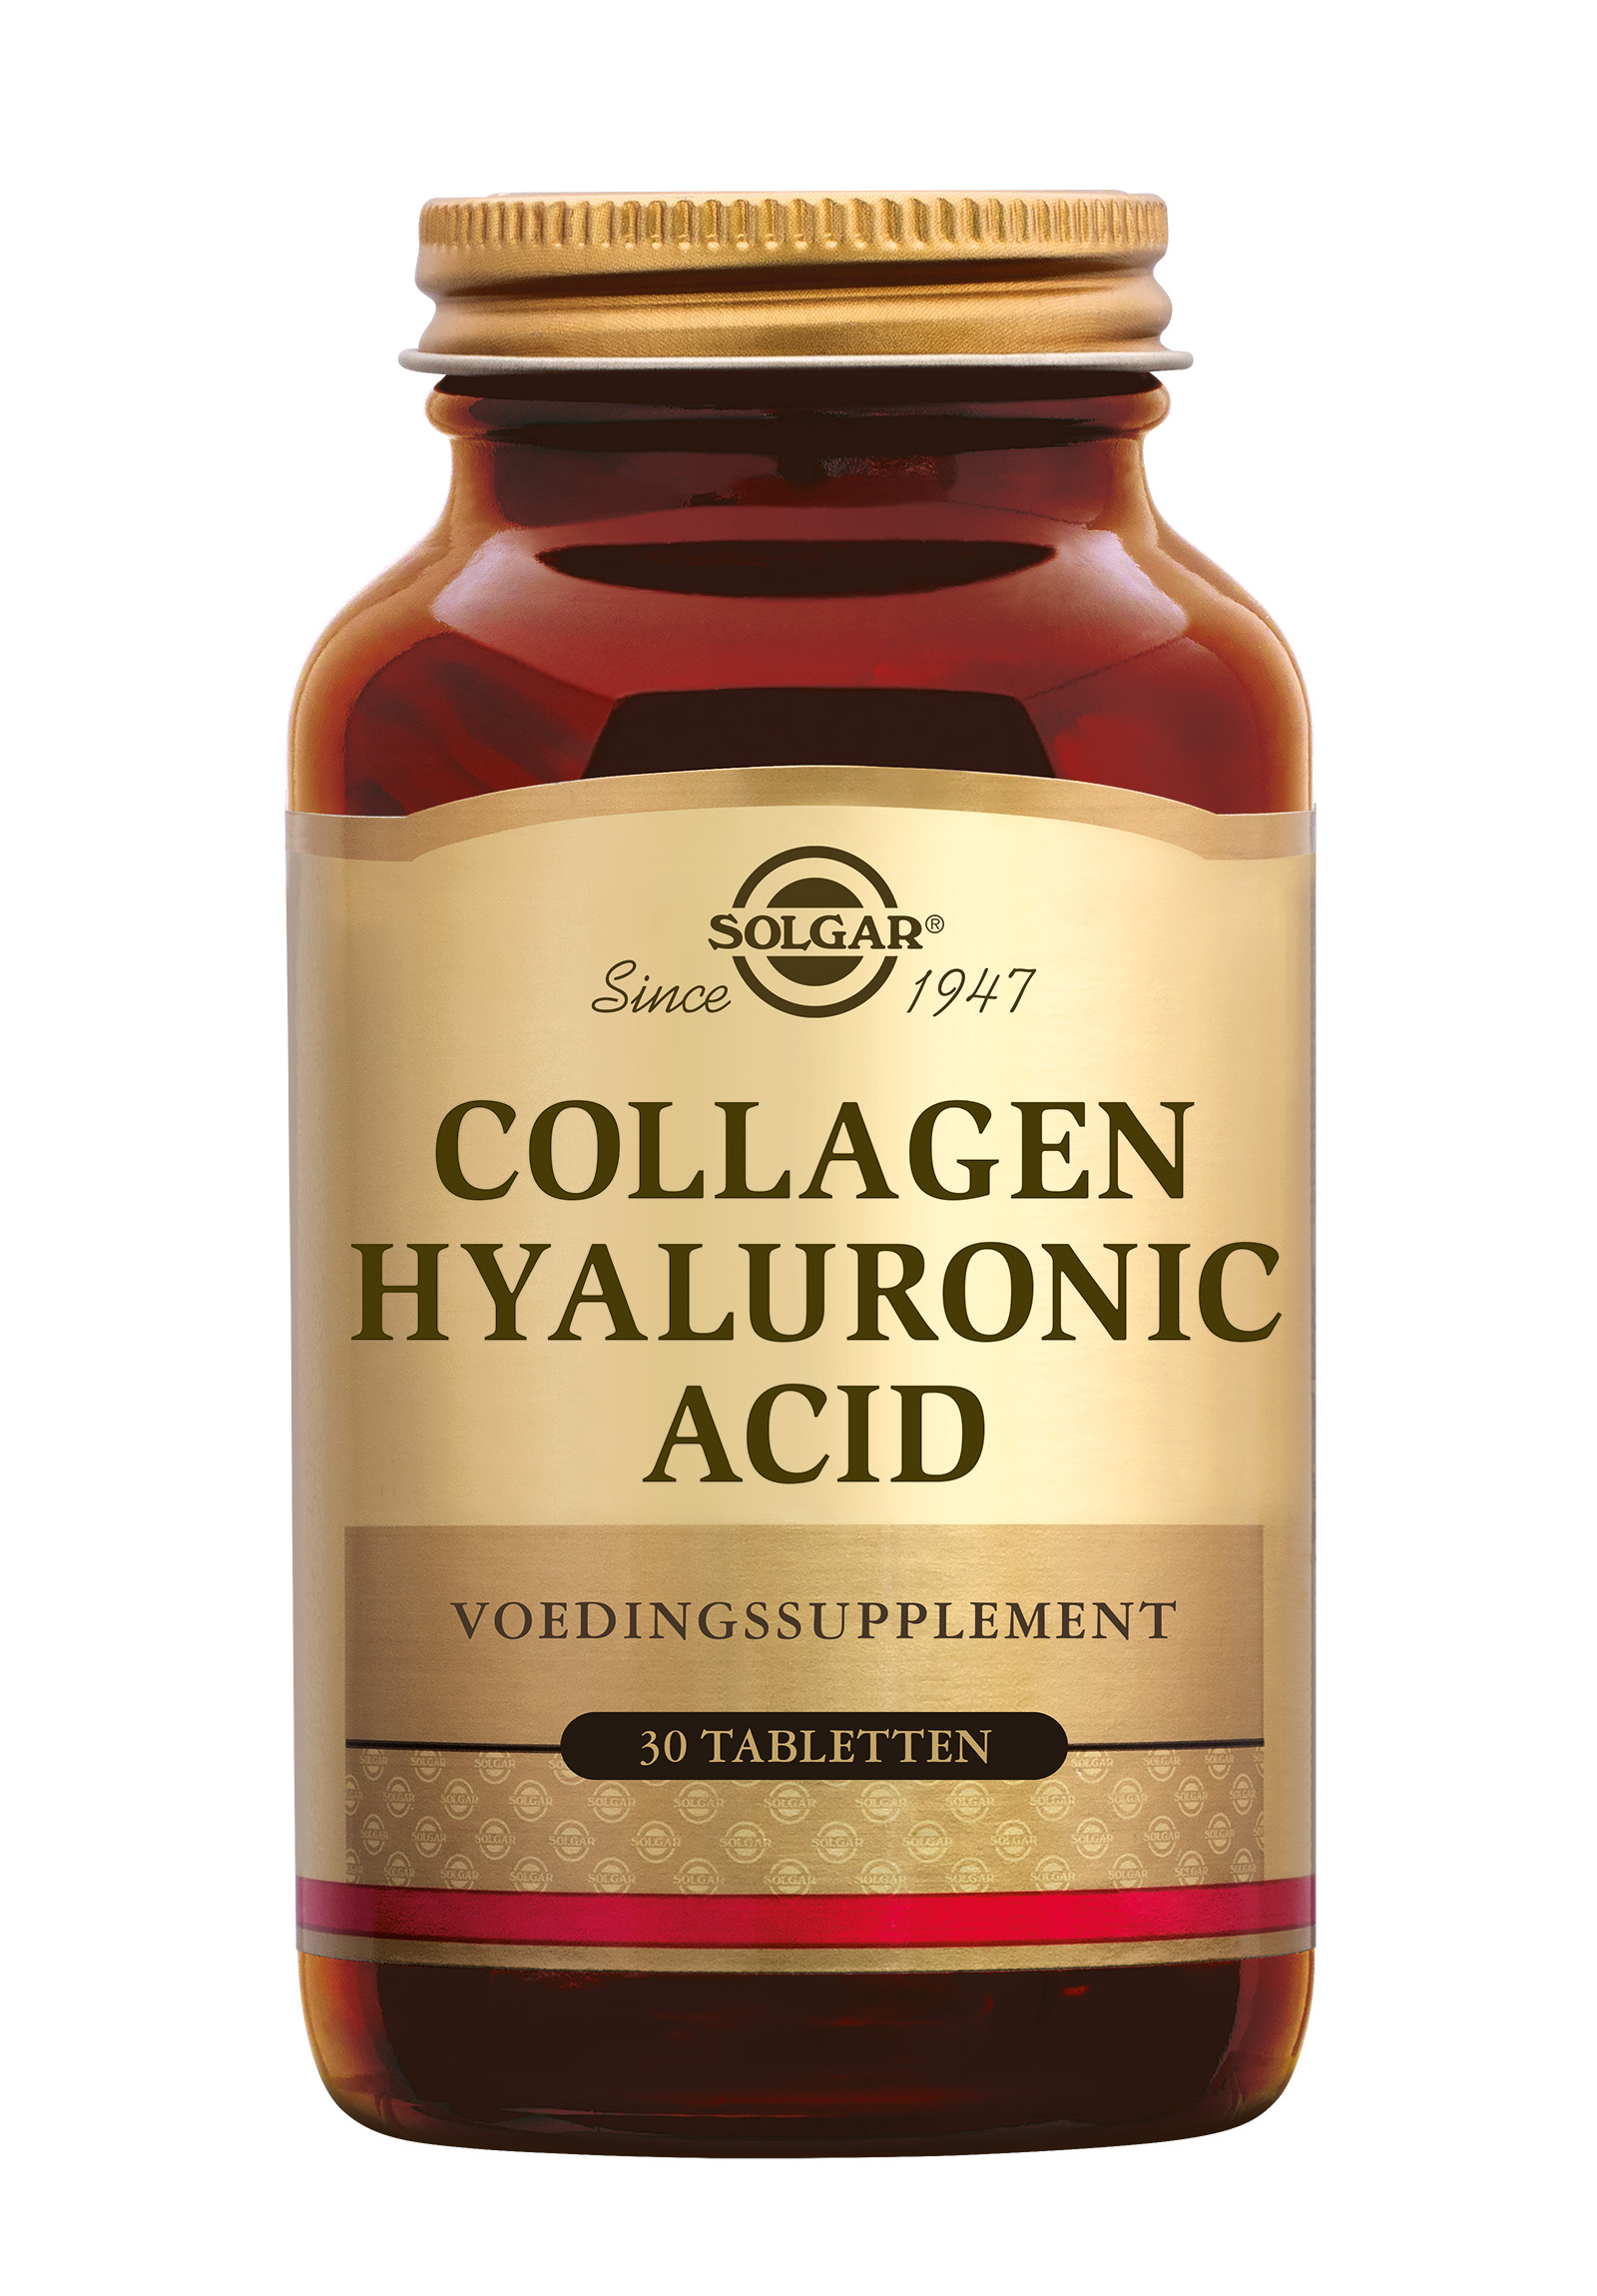 Collagen Hyaluronic Acid